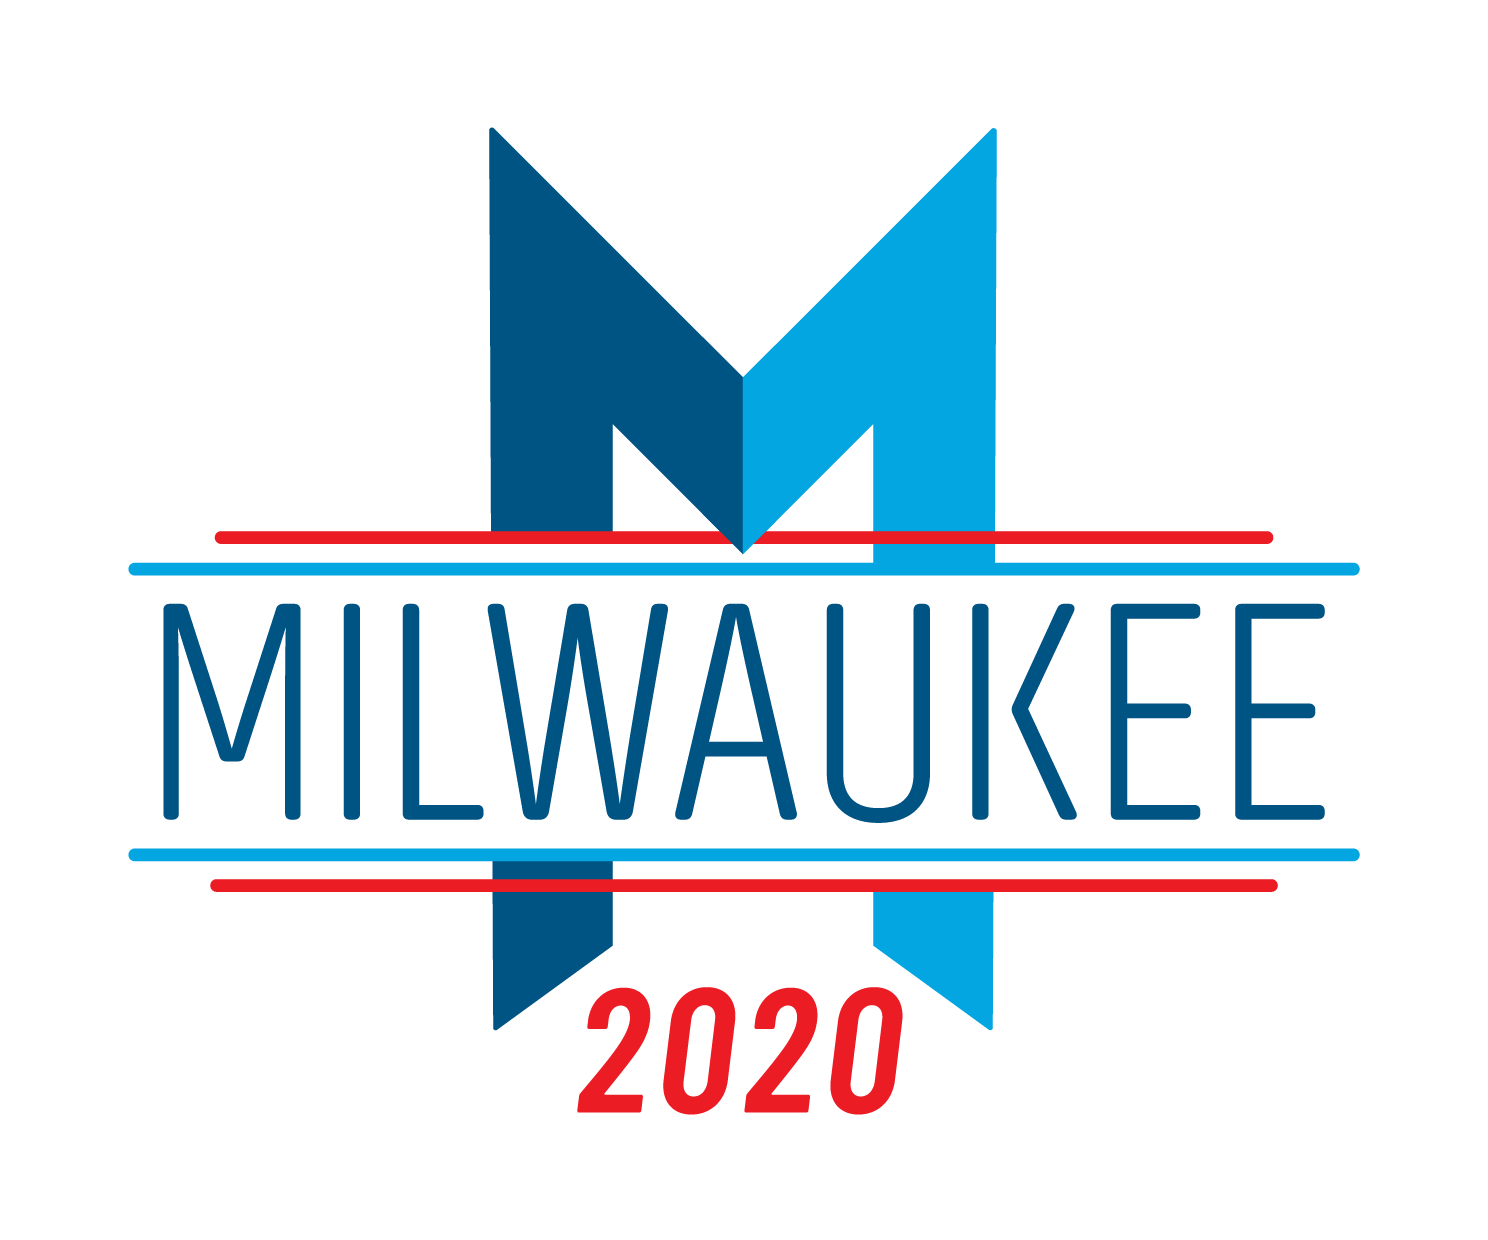 Milwaukee 2020 Host Committee logo